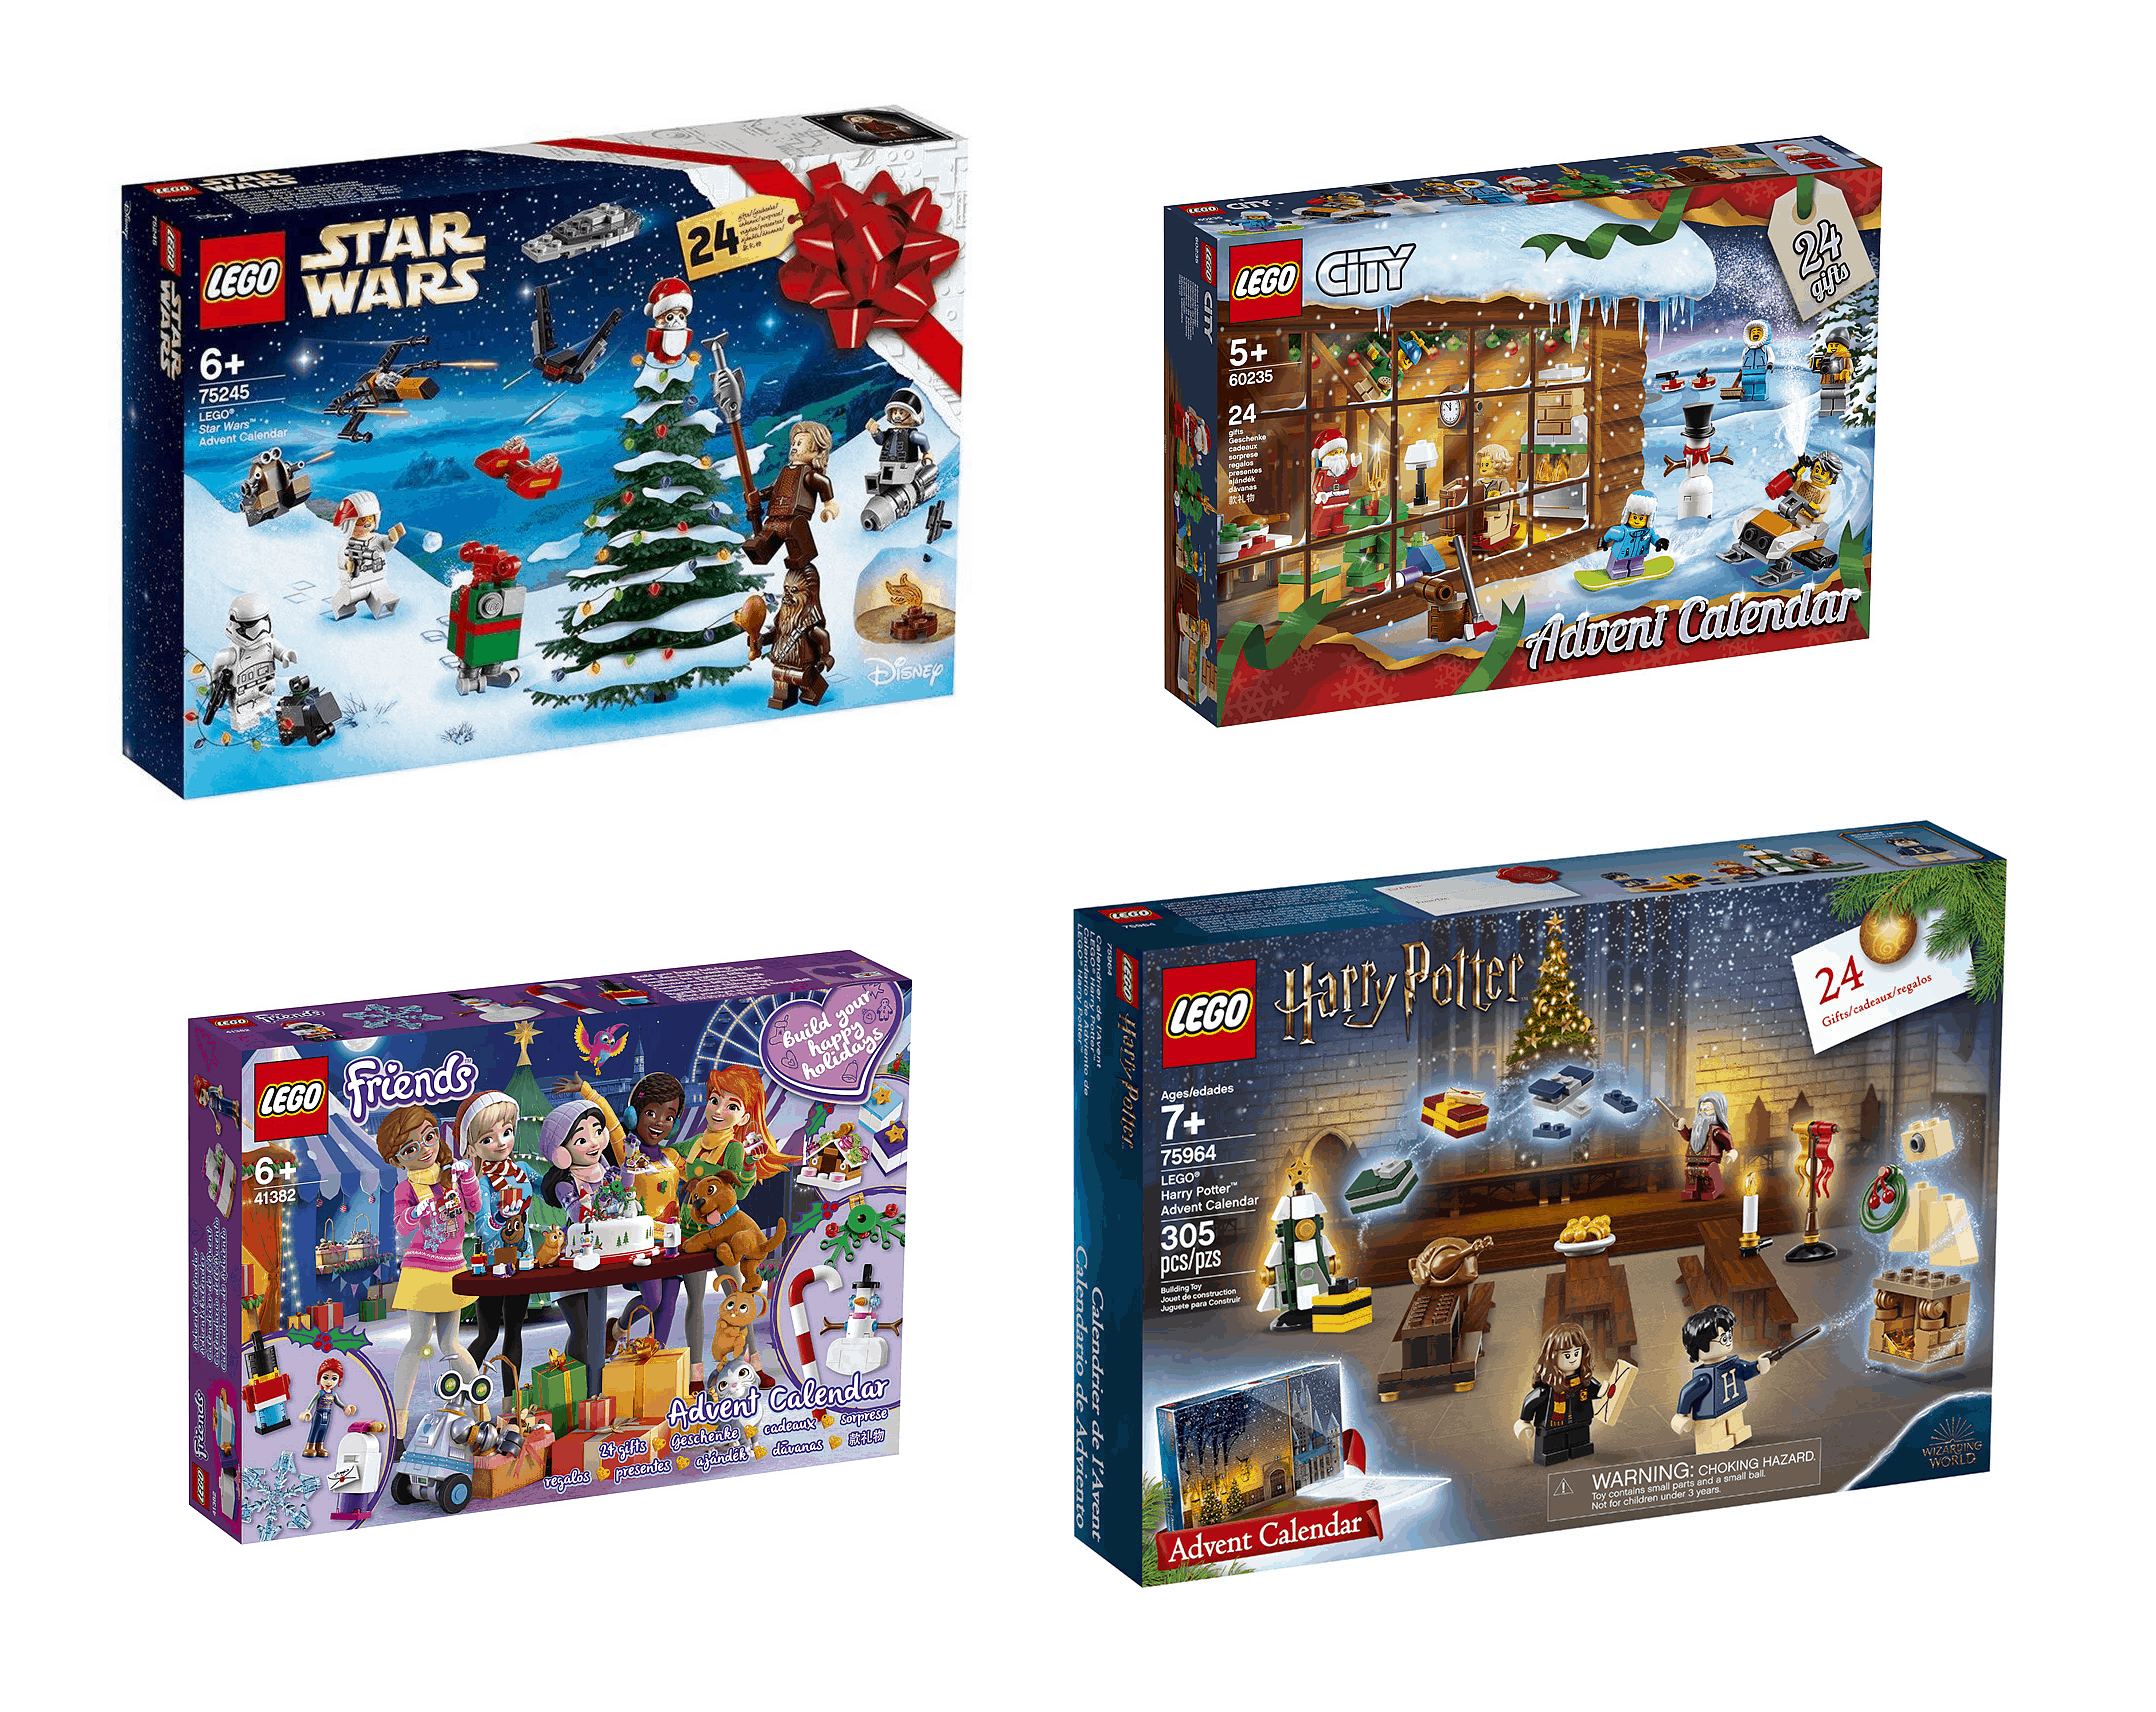 Calendrier Avent Lego Star Wars 2019.2019 Lego Advent Calendars Available Now Full Spoilers